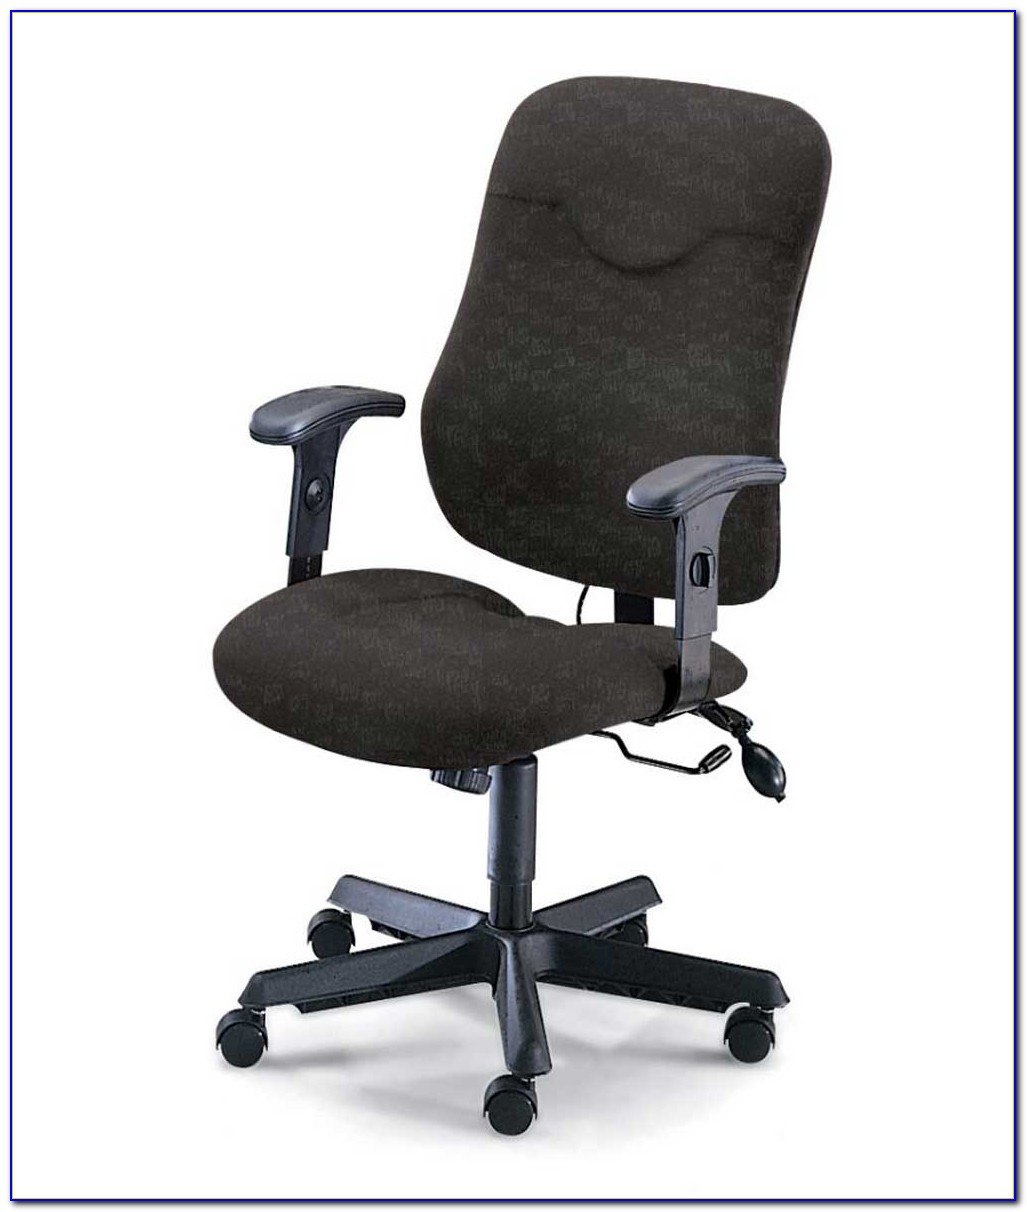 Best Desk Chair For Lower Back Pain Best Office Chairs For Back Pain In India Desk Home